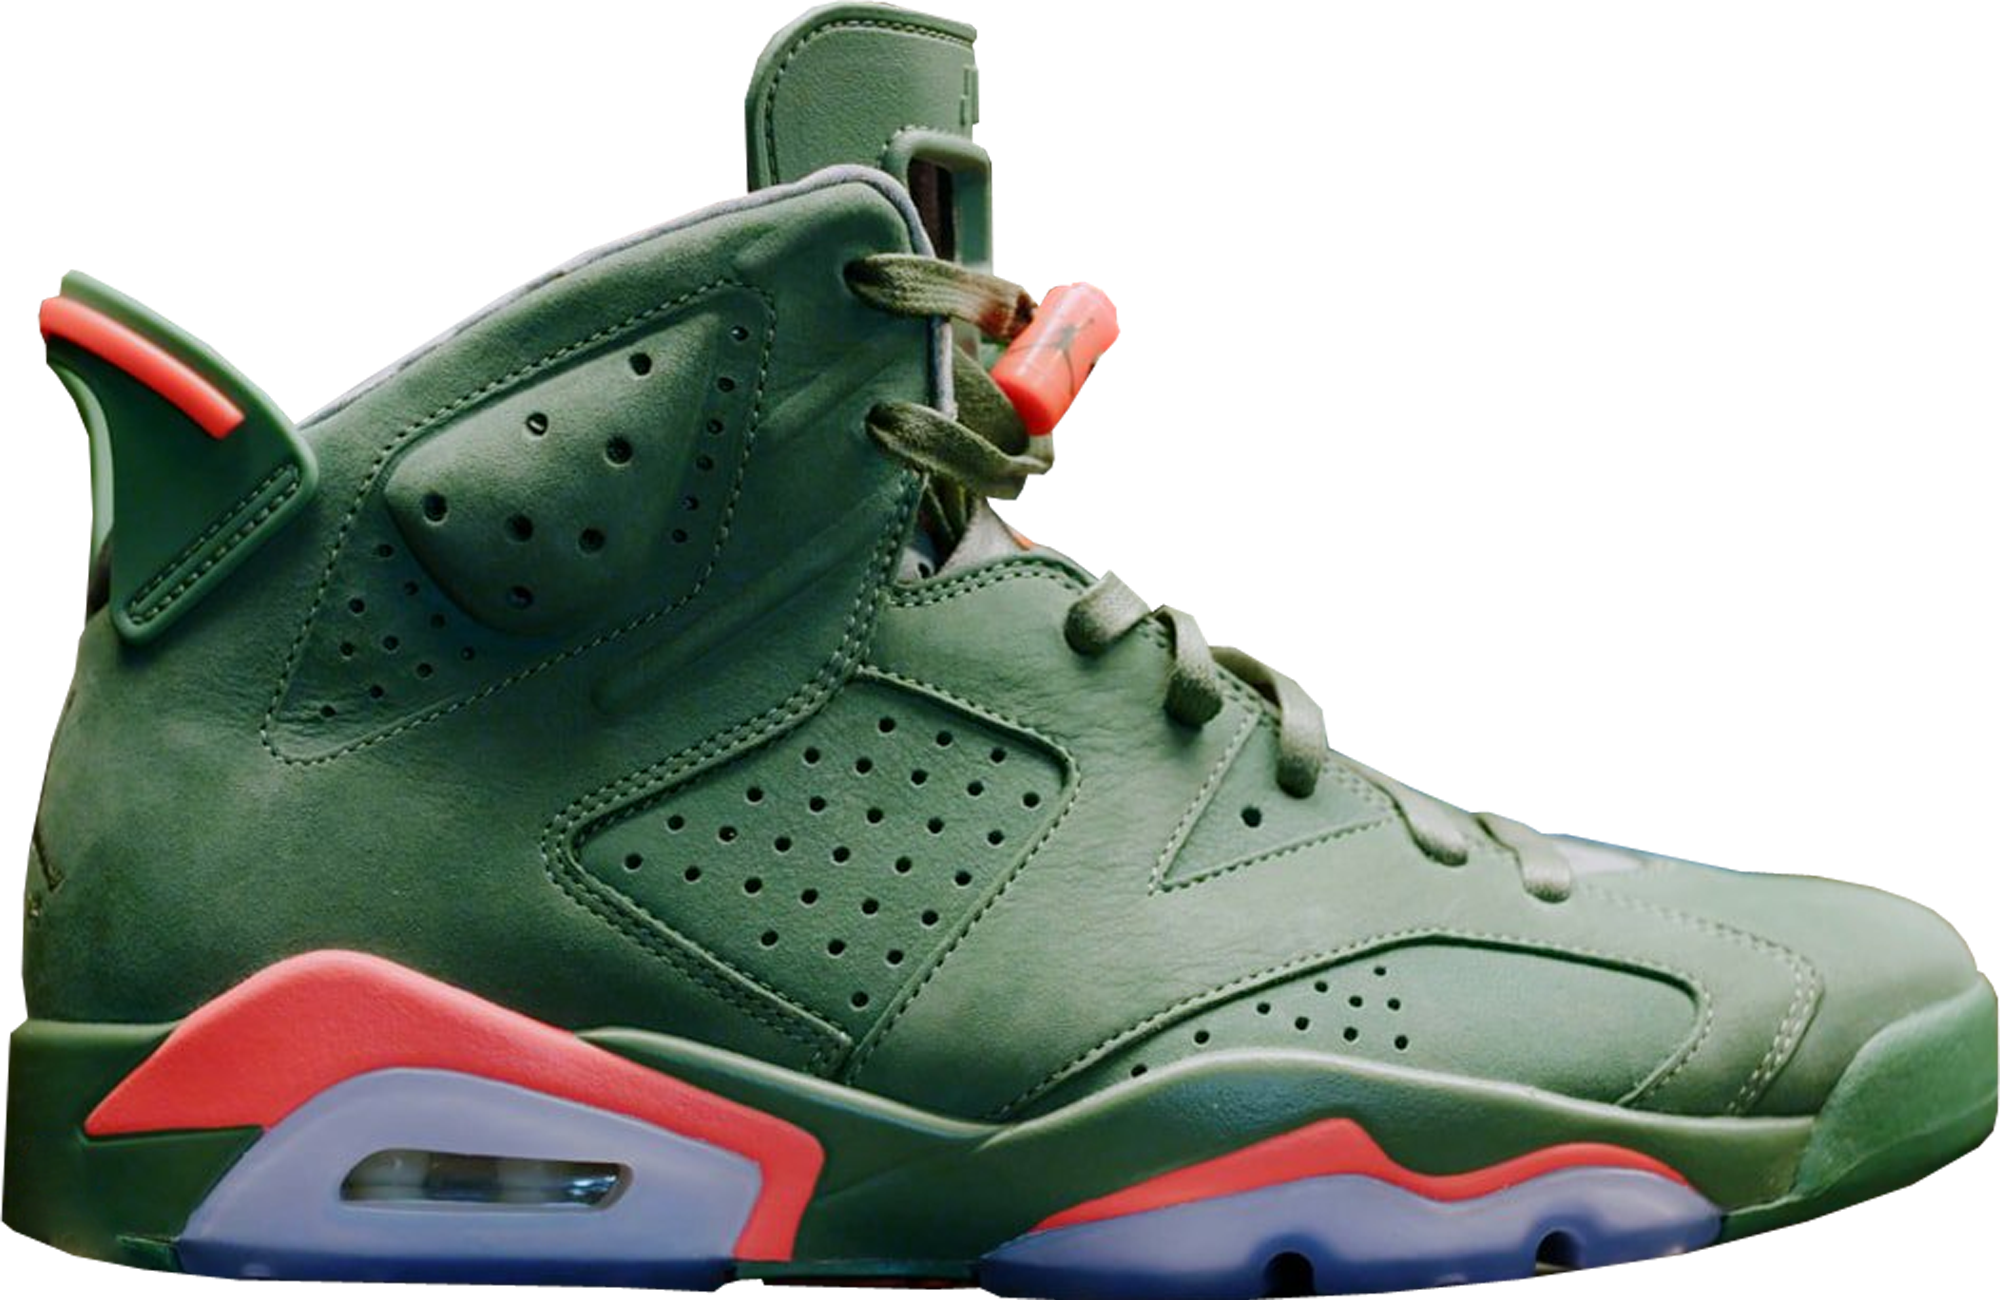 free shipping b48b3 caef7 ... cheap air jordan 6 size 17 shoes release date 3faaa 7520d